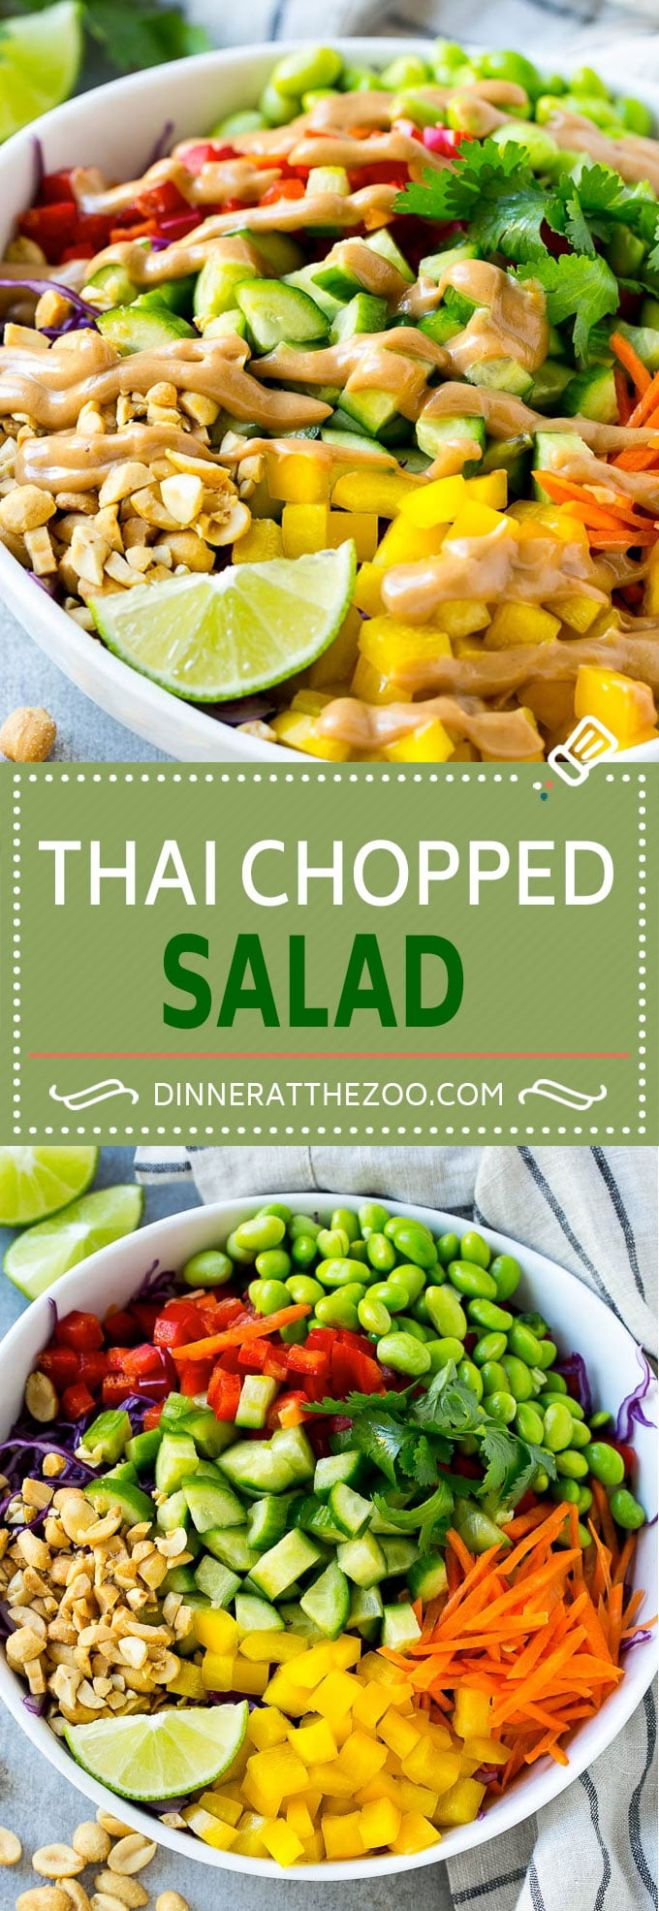 9 Healthy Salad Recipes - Dinner at the Zoo - Salad Recipes Healthy Easy